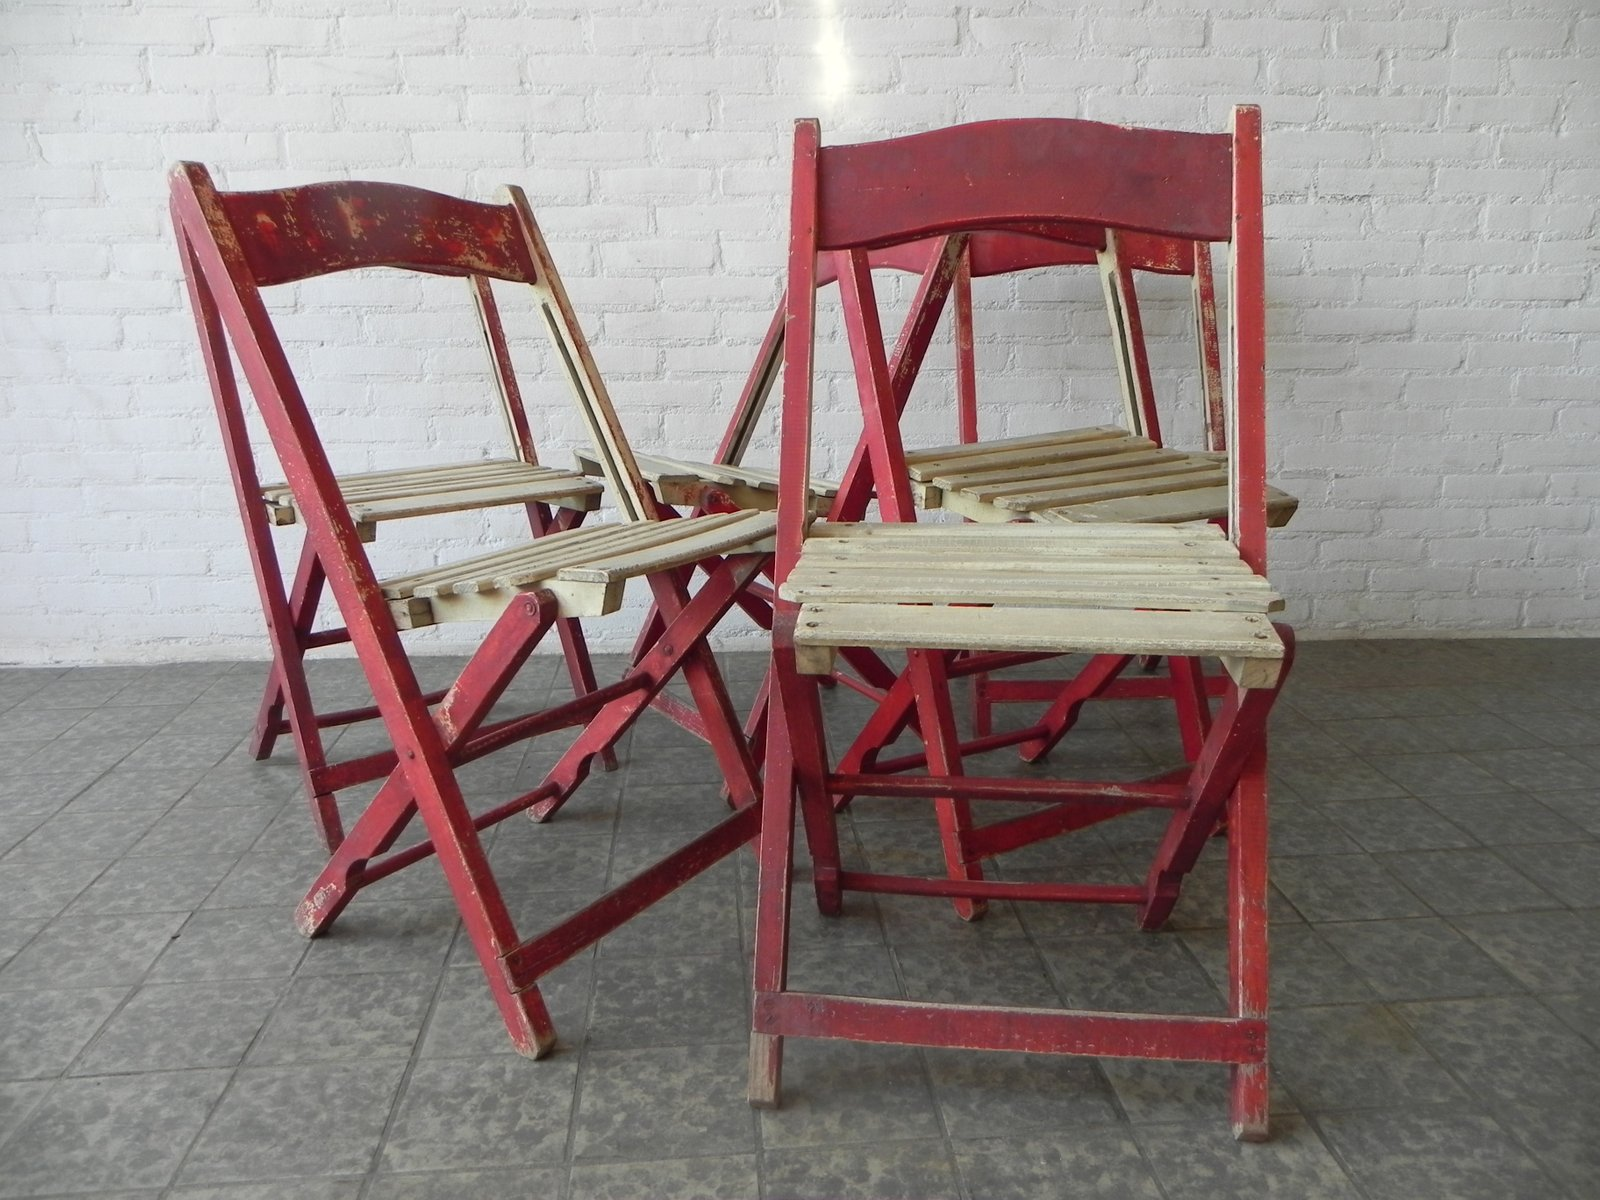 Wooden Folding Chairs 1940s Set of 6 for sale at Pamono